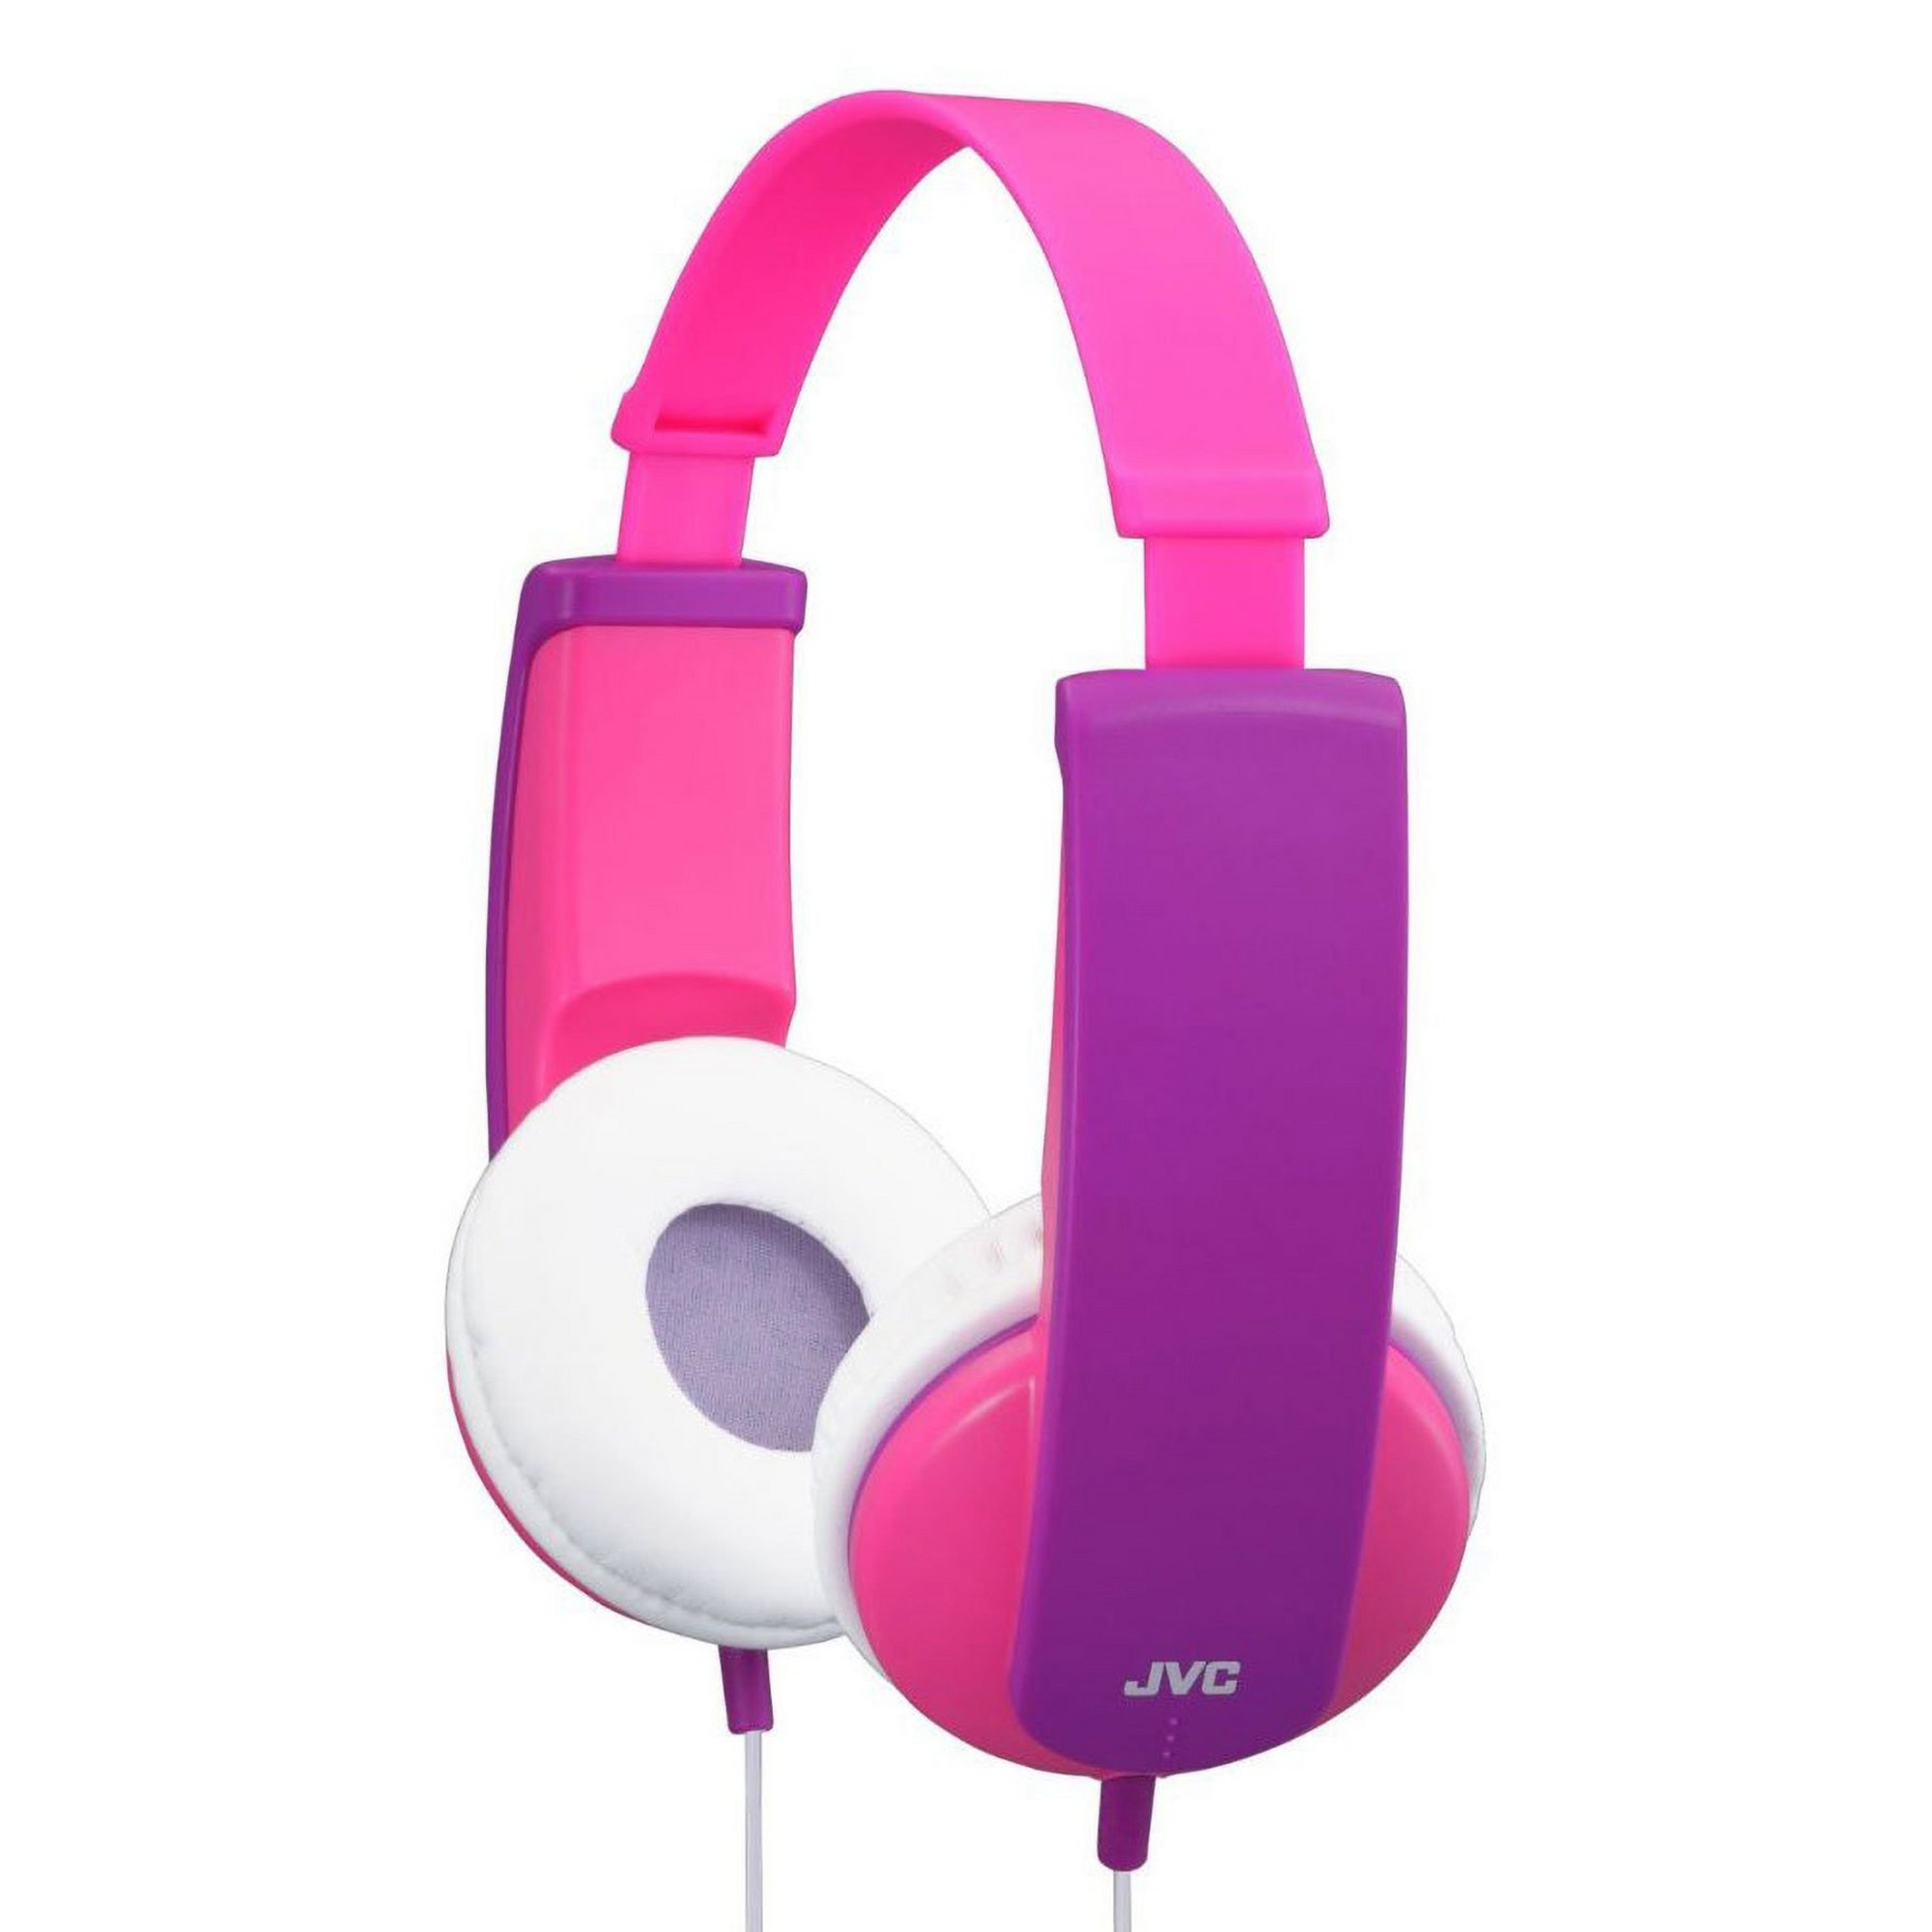 Image of JVC HAKD5 Tinyphones Kids Stereo Headphones